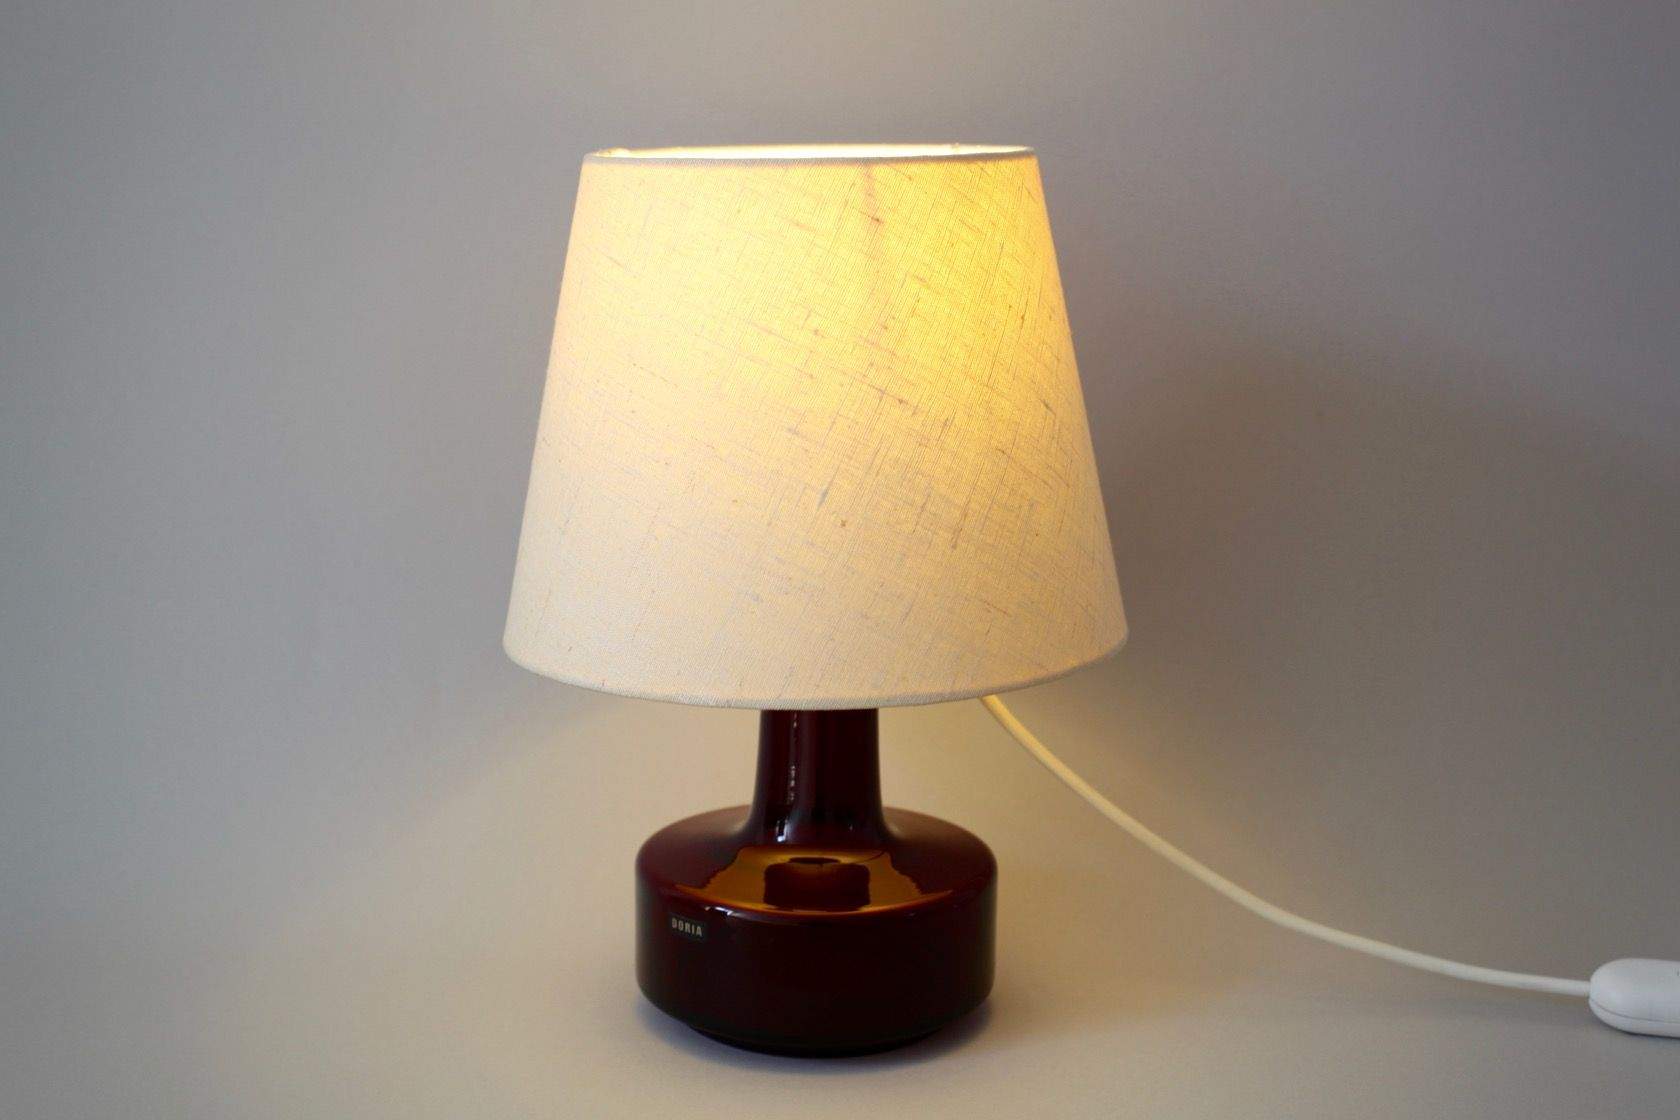 Glass red table lamp - Table Lamp With Red Glass Base From Doria 1960s 9 215 00 Price Per Piece